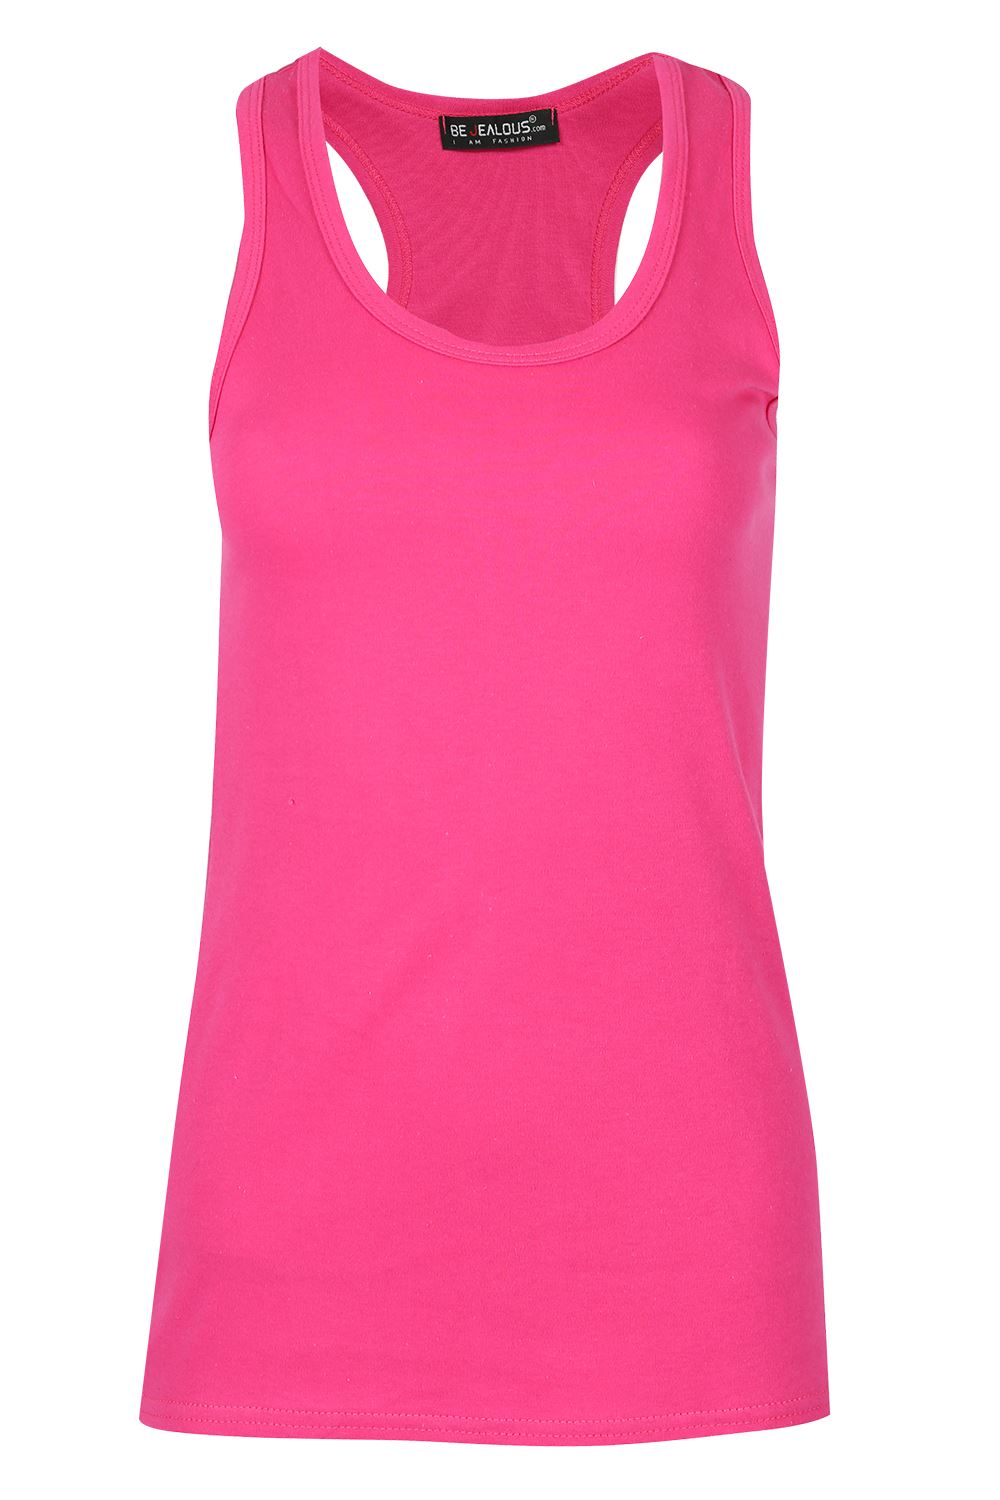 Old Navy has a collection of racer back tanks that provides a stylish look and a comfortable fit. Choose from racer back tanks in a wide selection of fabulous styles and colors.